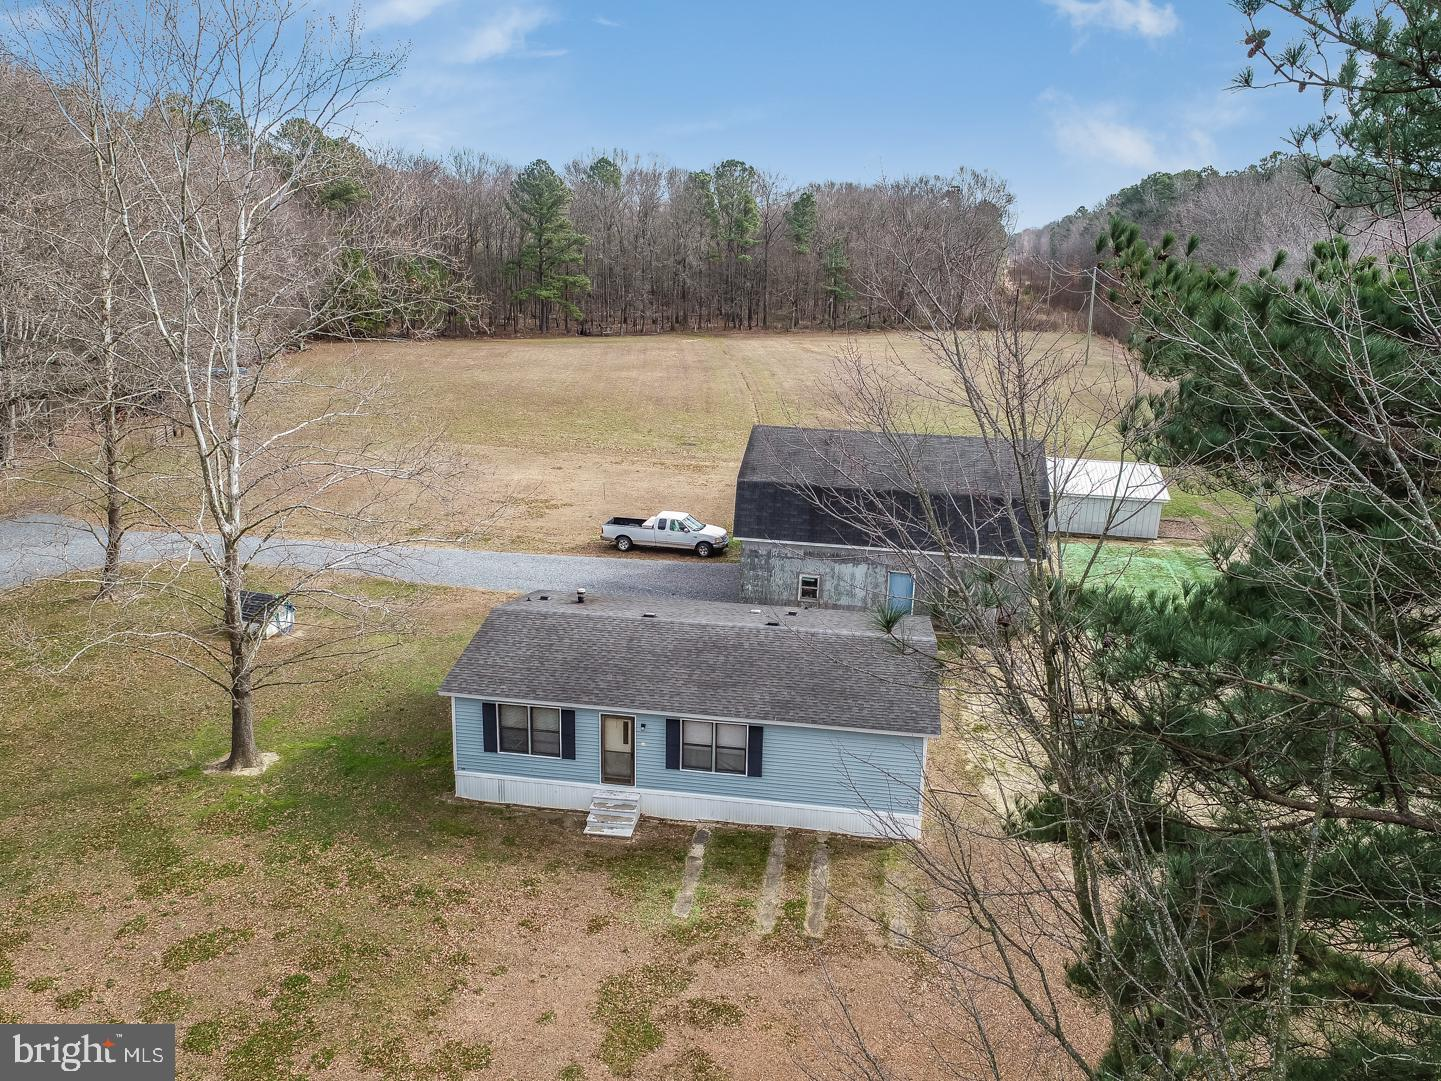 11039 Holly Road, Ridgely, MD 21660